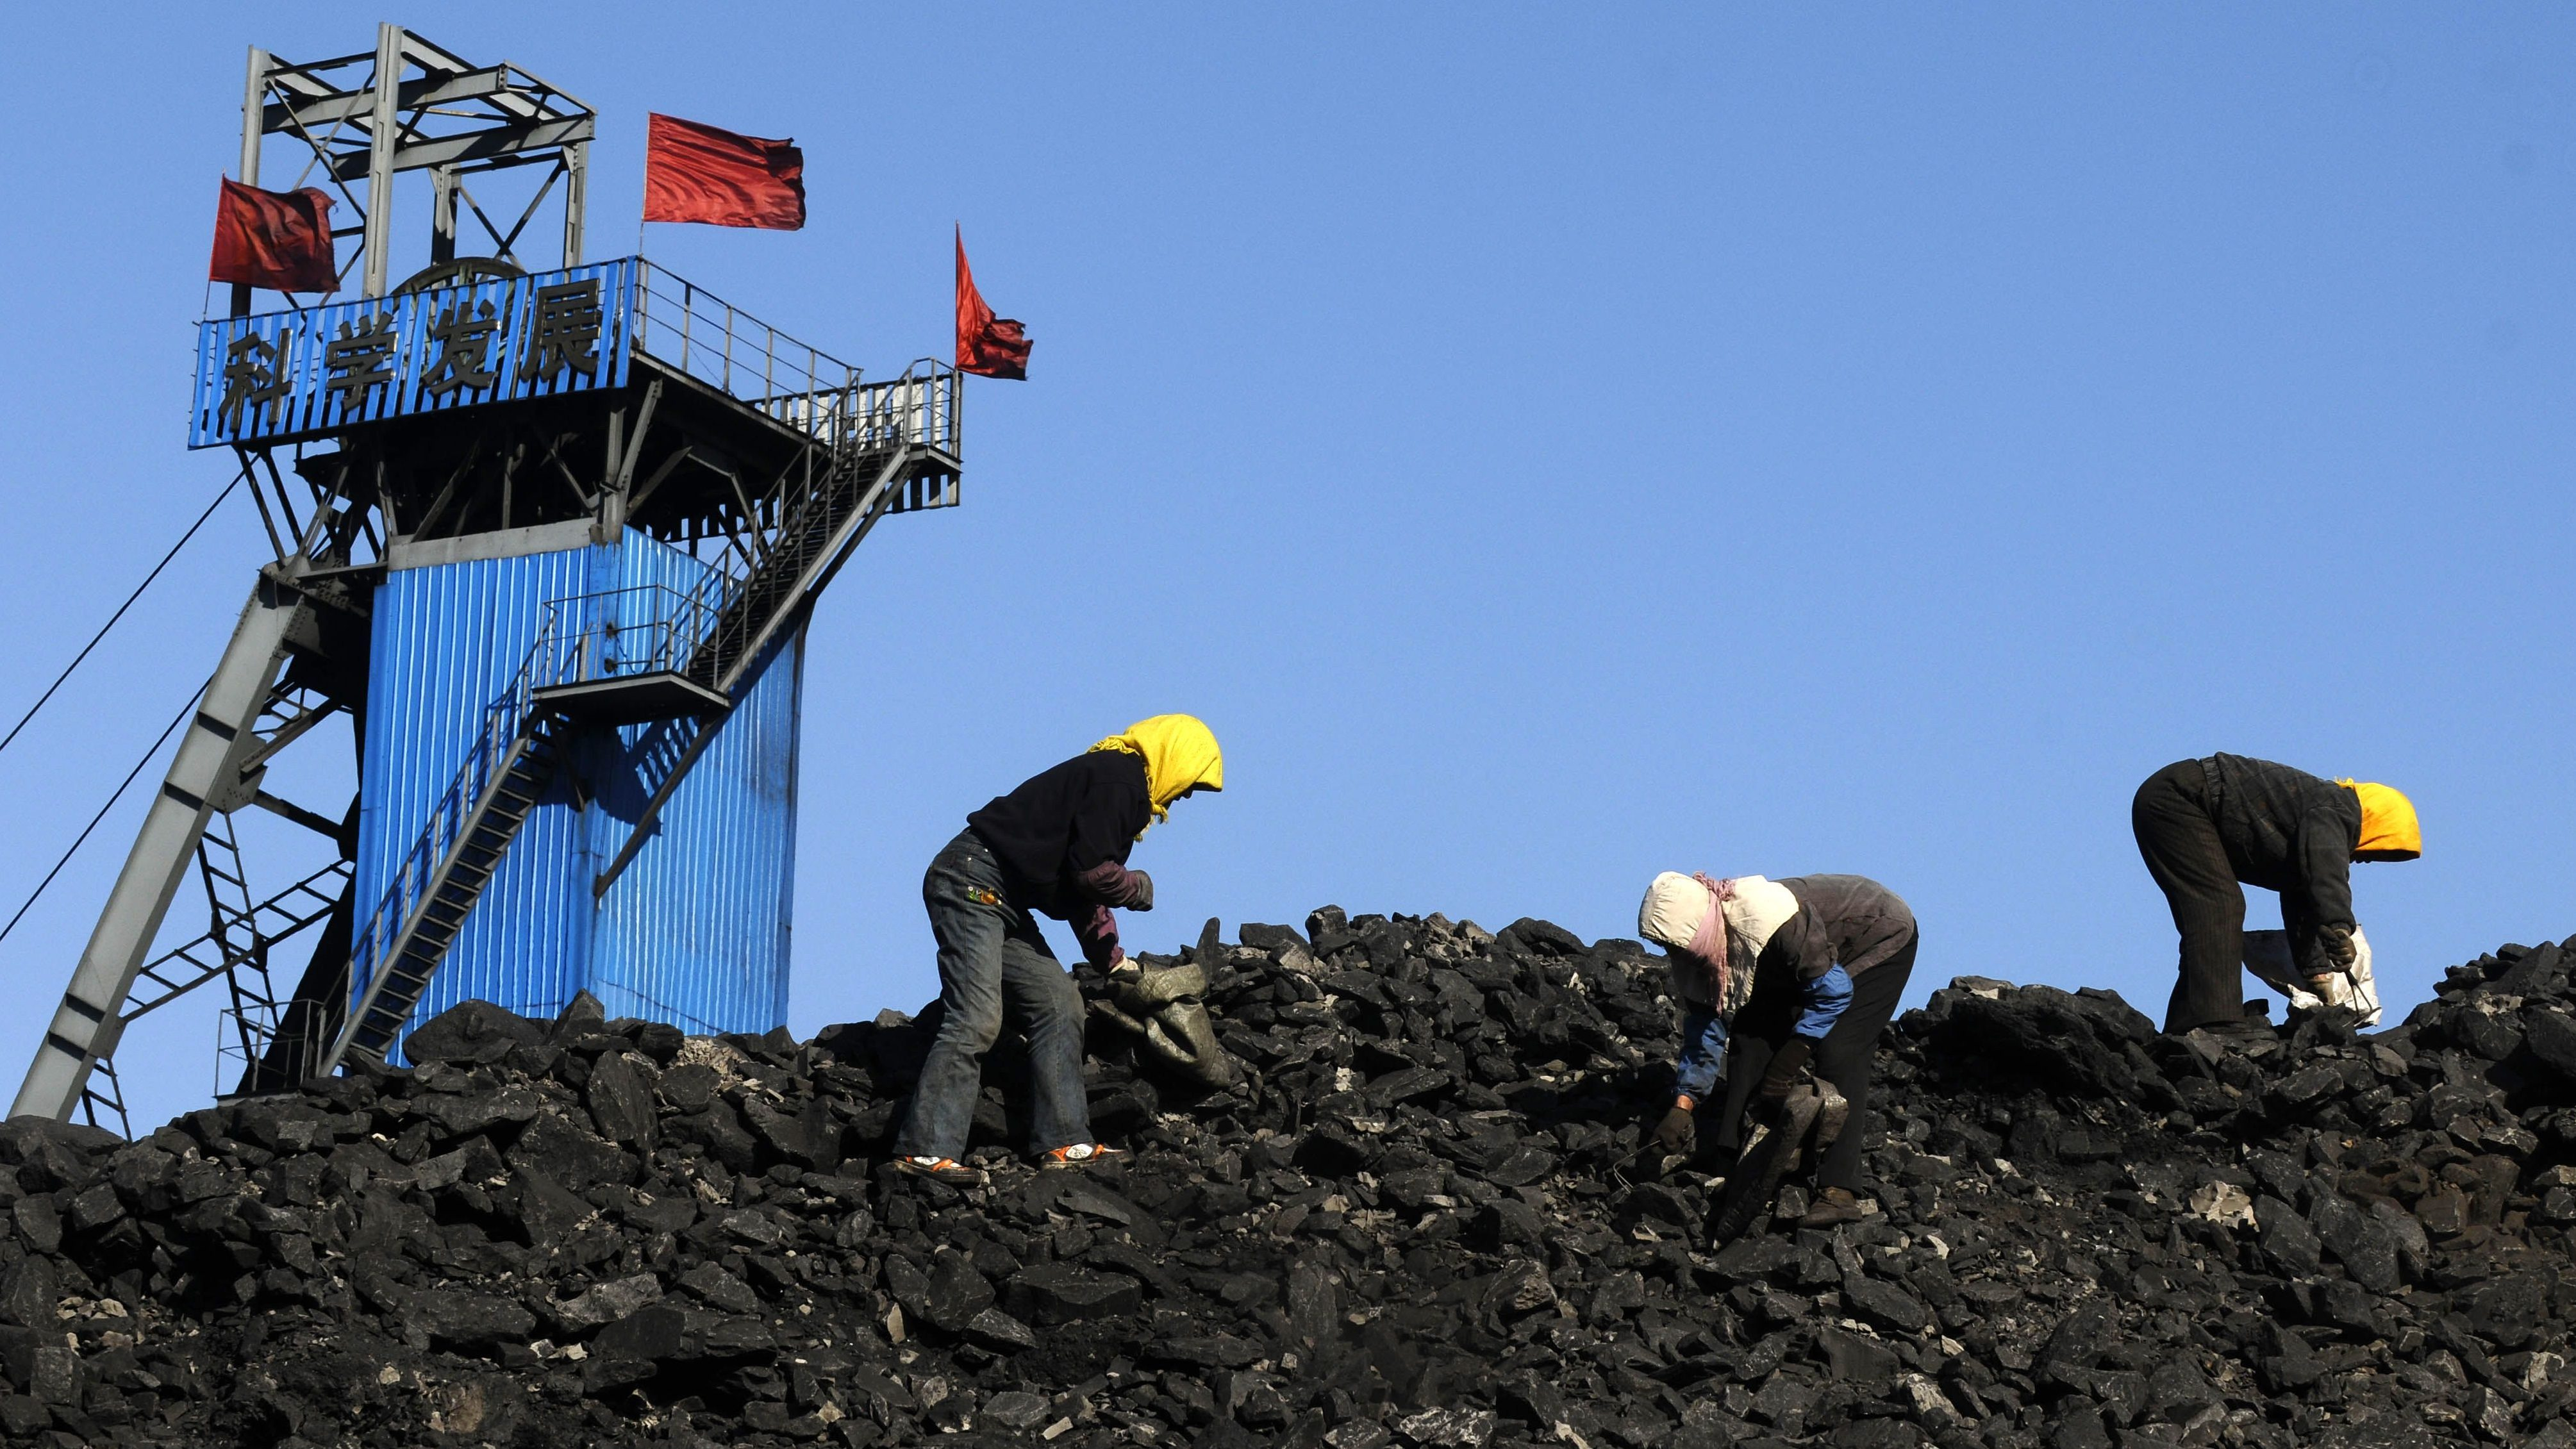 Labourers search for usable coal Labourers search for usable coal at a cinder dump site in Changzhi, Shanxi province, China - 19 Nov 2008 Six thousand coal mines will be closed over the next two years in a bid to improve workplace safety, Vice-Premier Zhang Dejiang said. By the end of 2010, China will have less than 10,000 mines, down from about 16,000 today